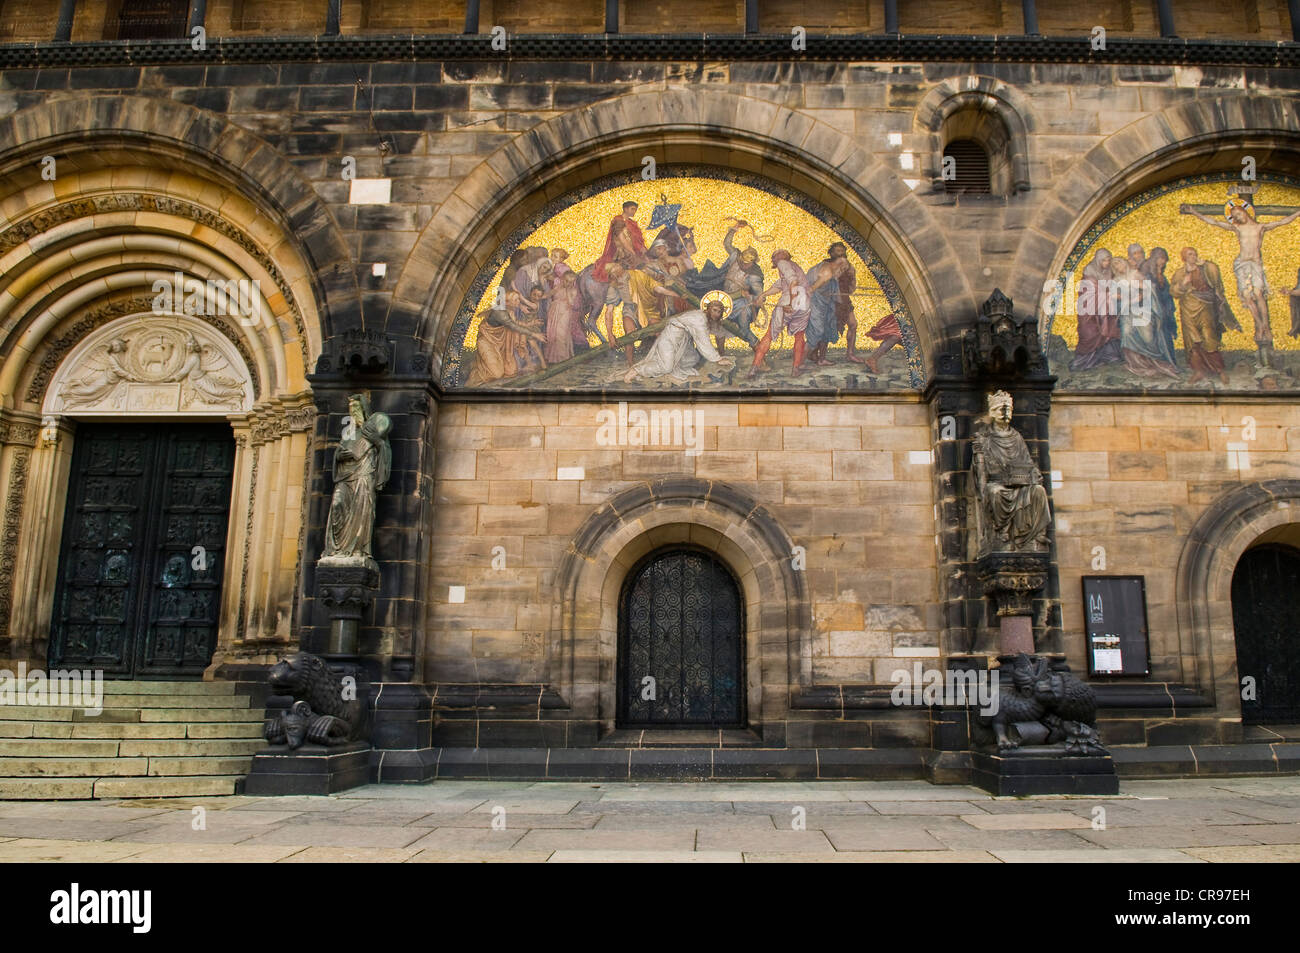 Stations of the cross and depiction of the crucifixion at St. Petri-Dom, St. Peter's Cathedral, Bremen, Germany, Stock Photo